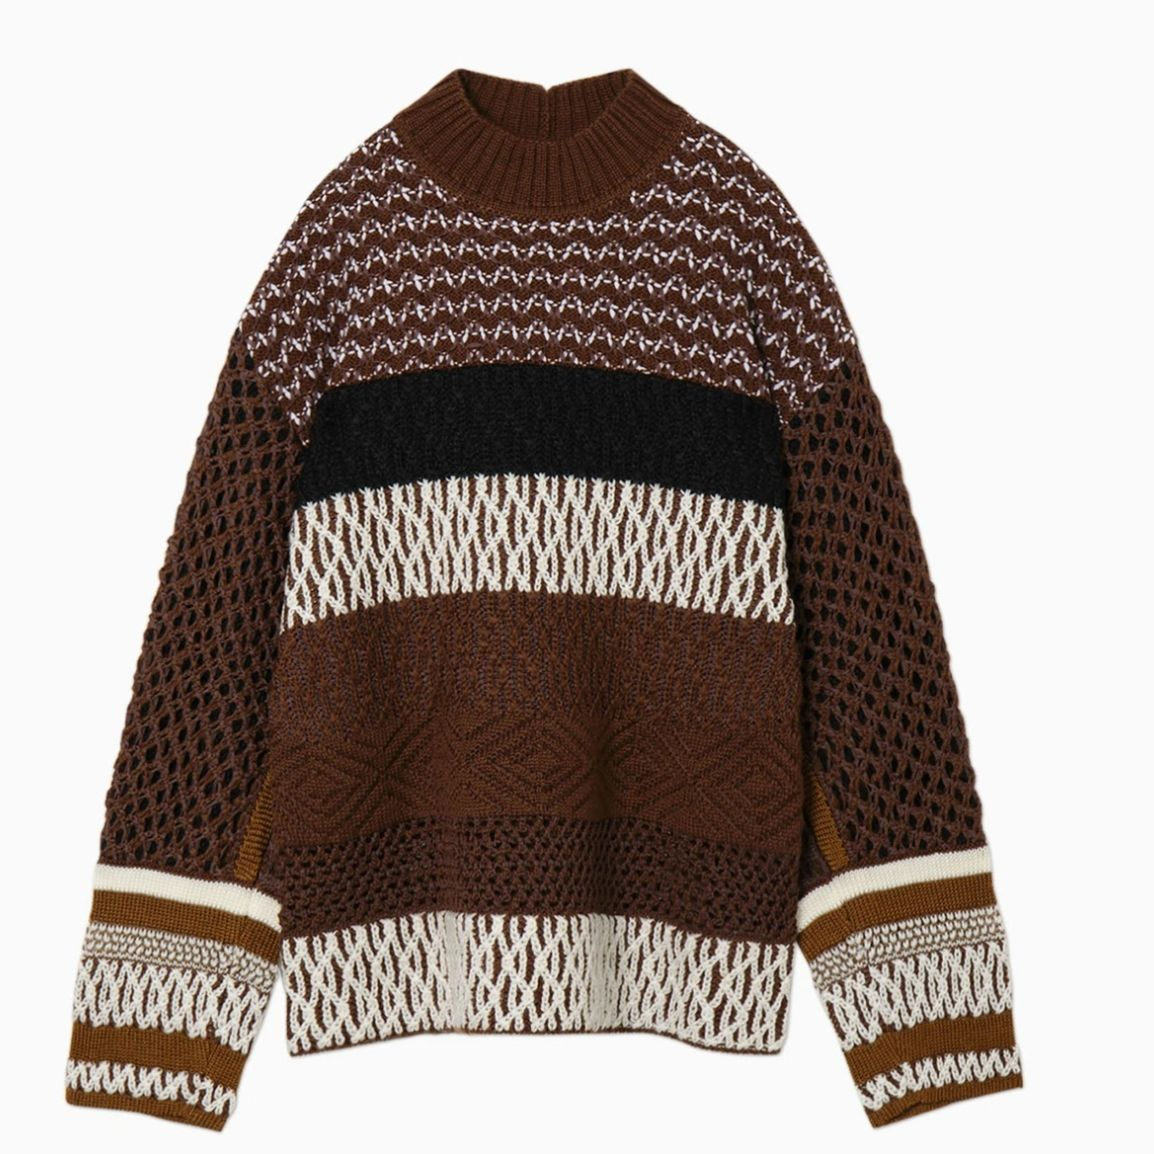 DONNA Les Boutiques - Knitted artisanal basketweave Sweater